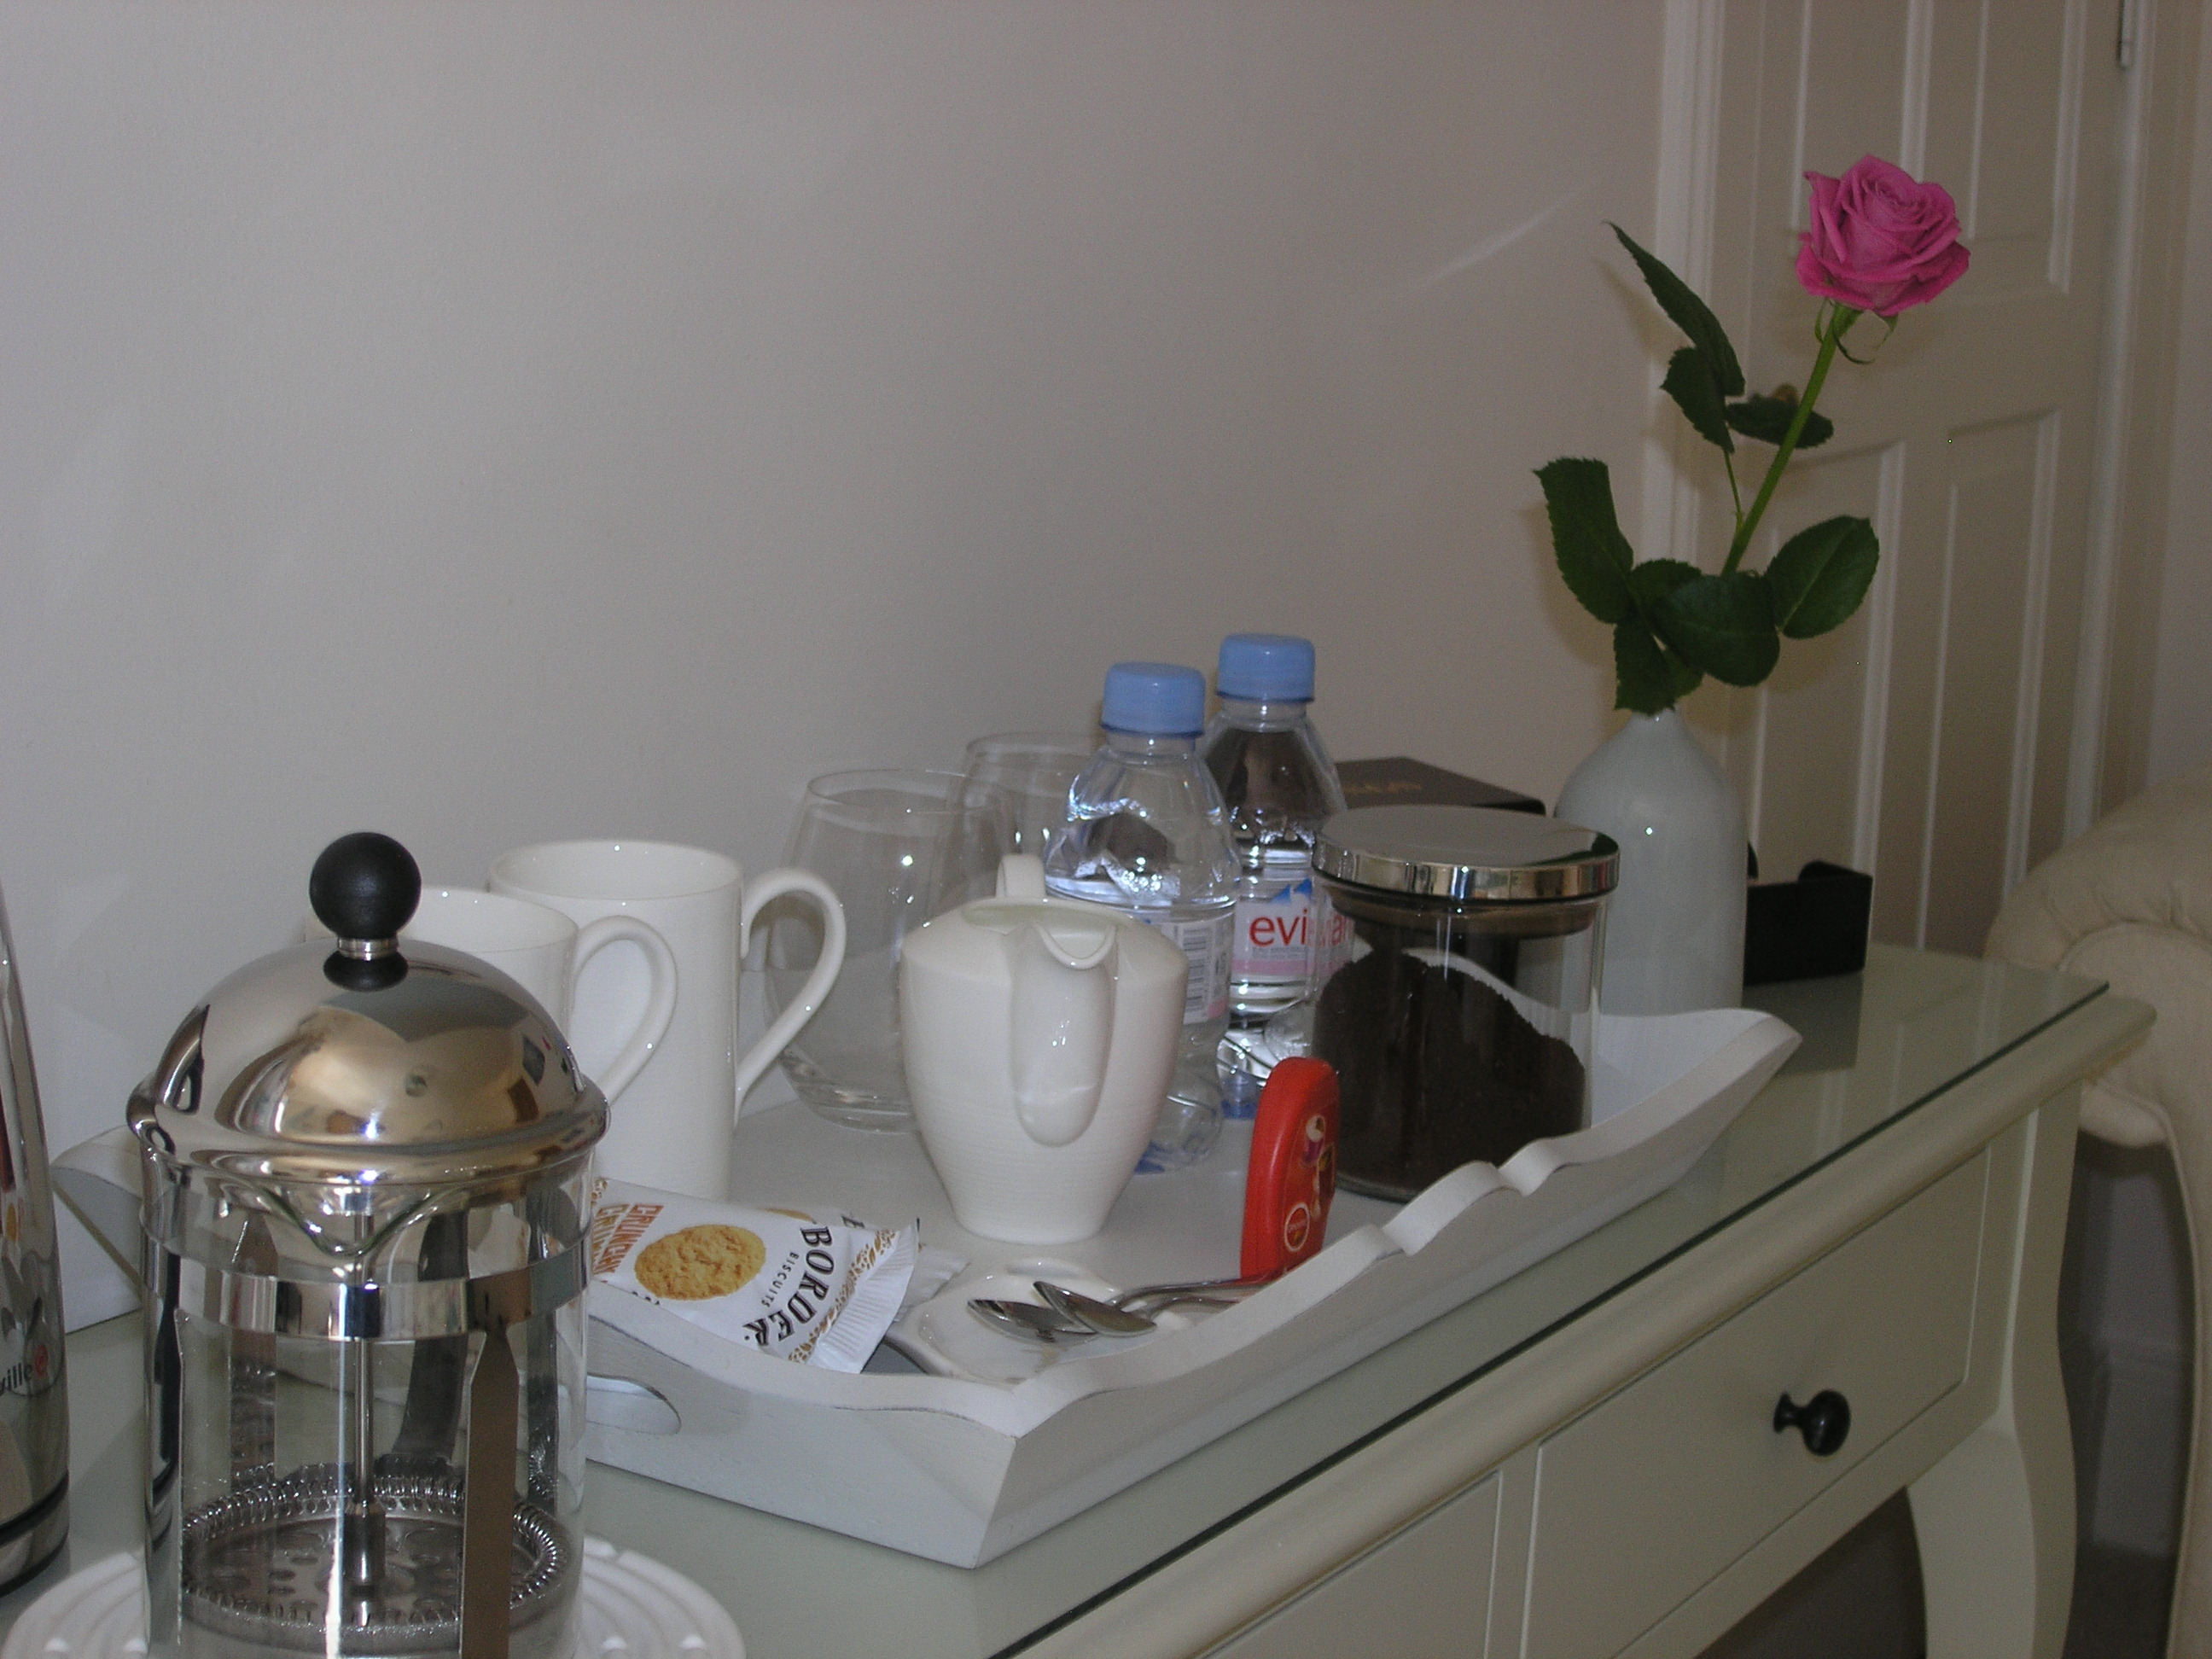 Enjoy a selection of teas and ground coffee